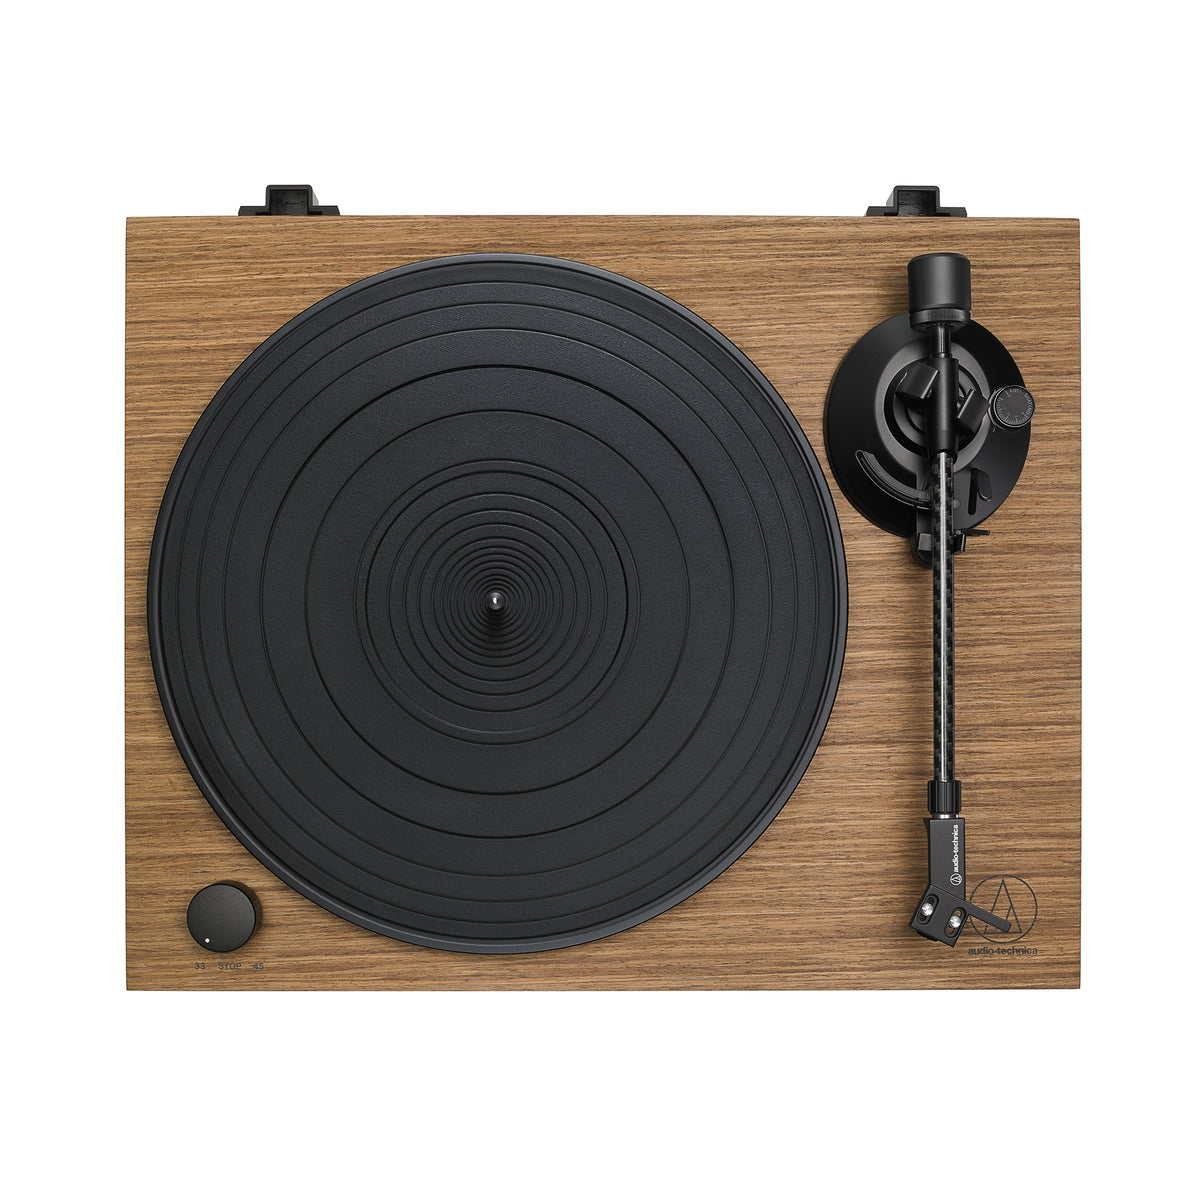 Audio Technica: AT-LPW40WN Turntable - Walnut